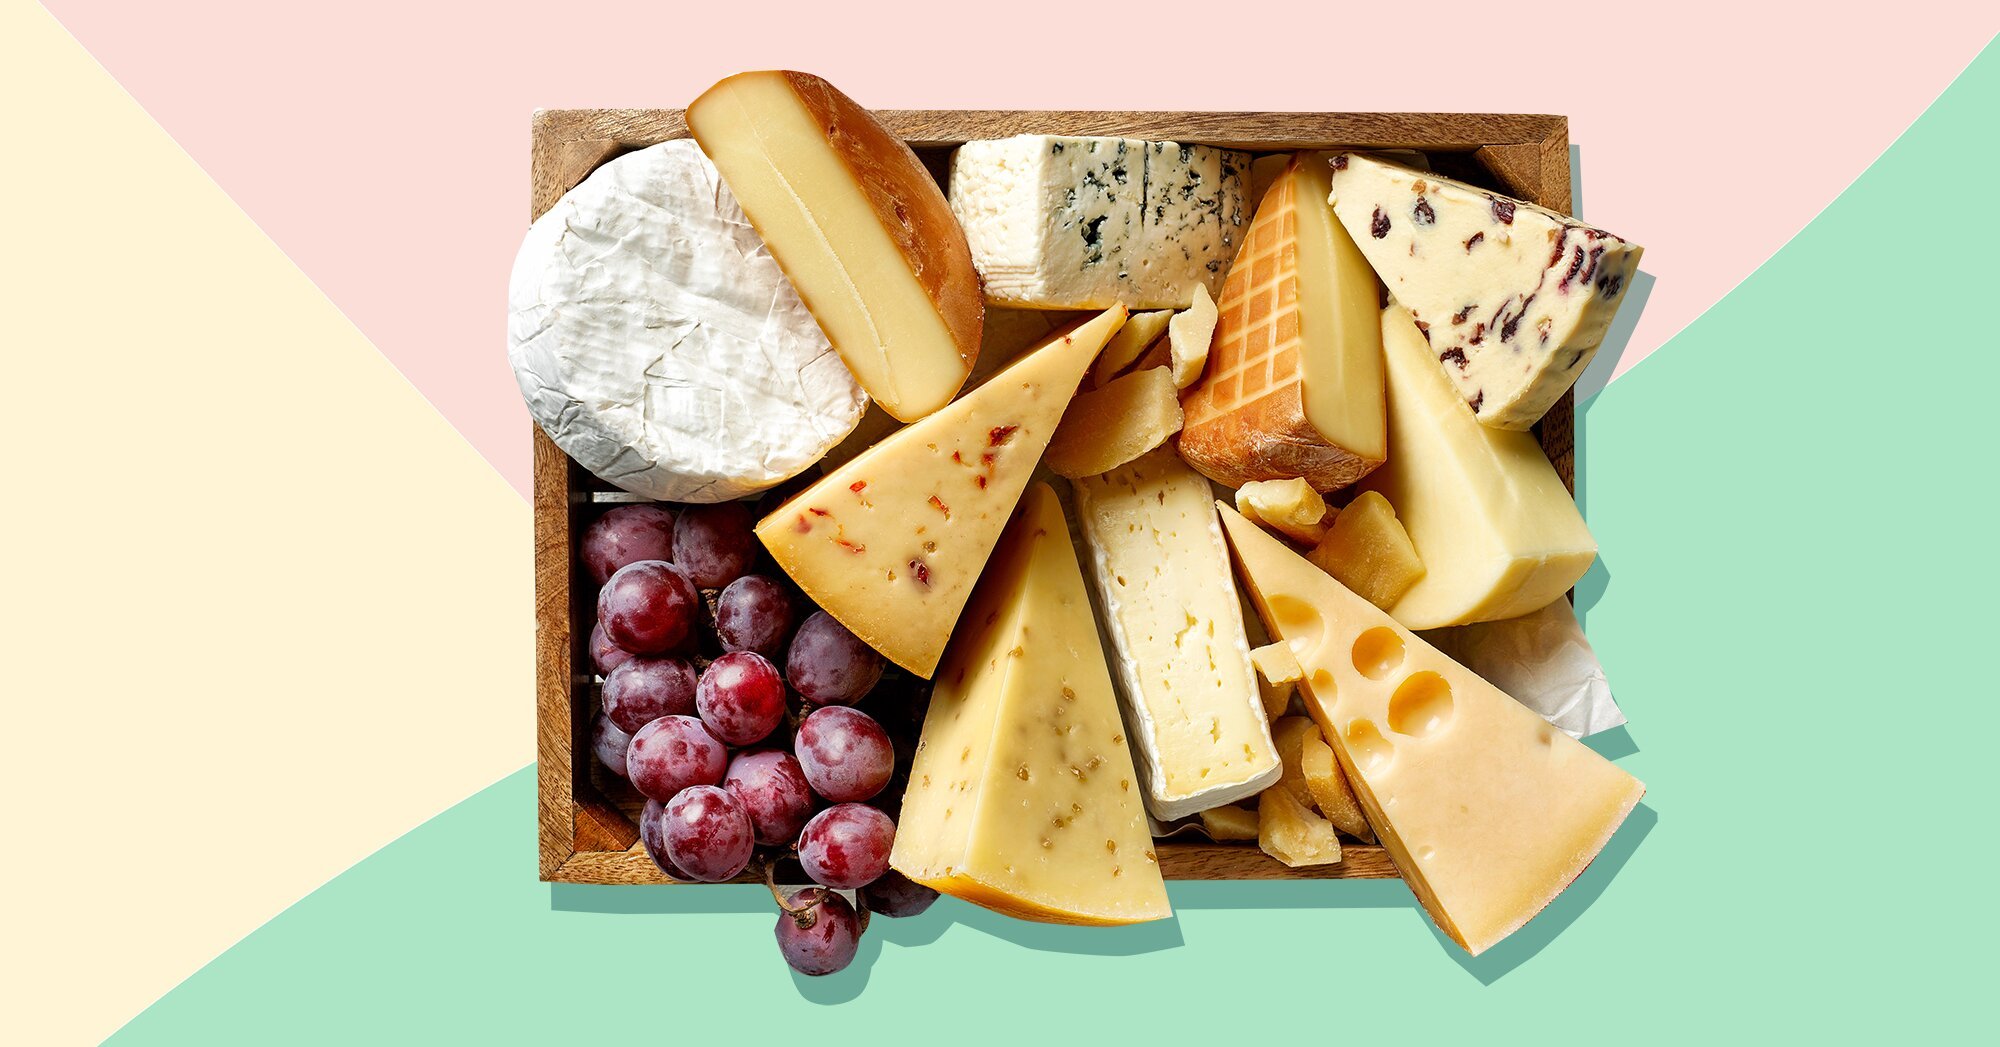 The Healthiest Cheeses To Eat - Best Healthy Cheeses